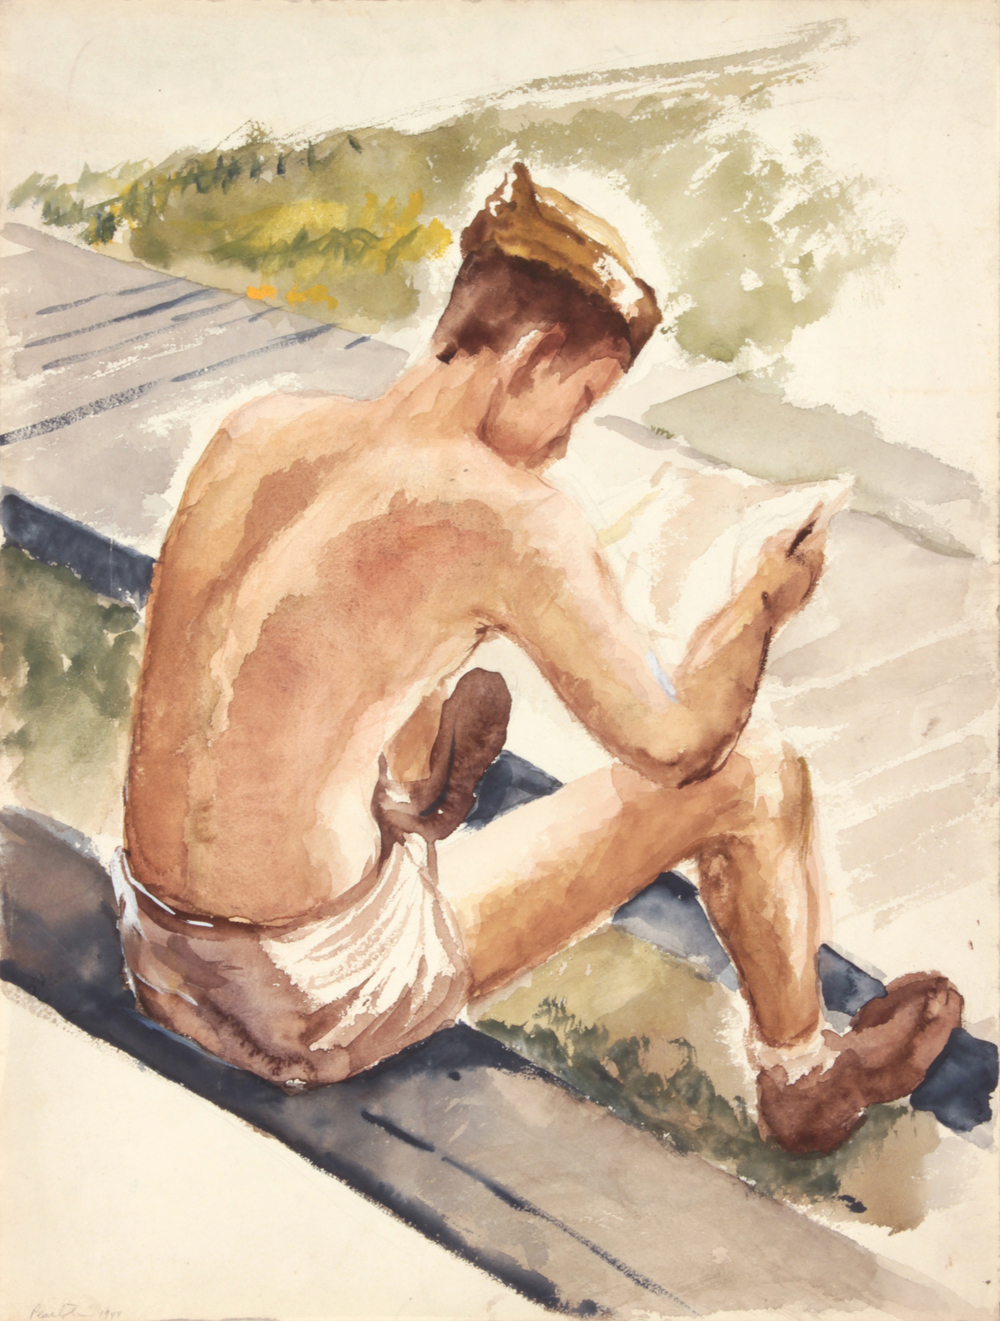 45. 1943-44 Winter, Training In Florida (Soldier Reading Letter), Watercolor on Paper, 16x12, PPS 1530.JPG